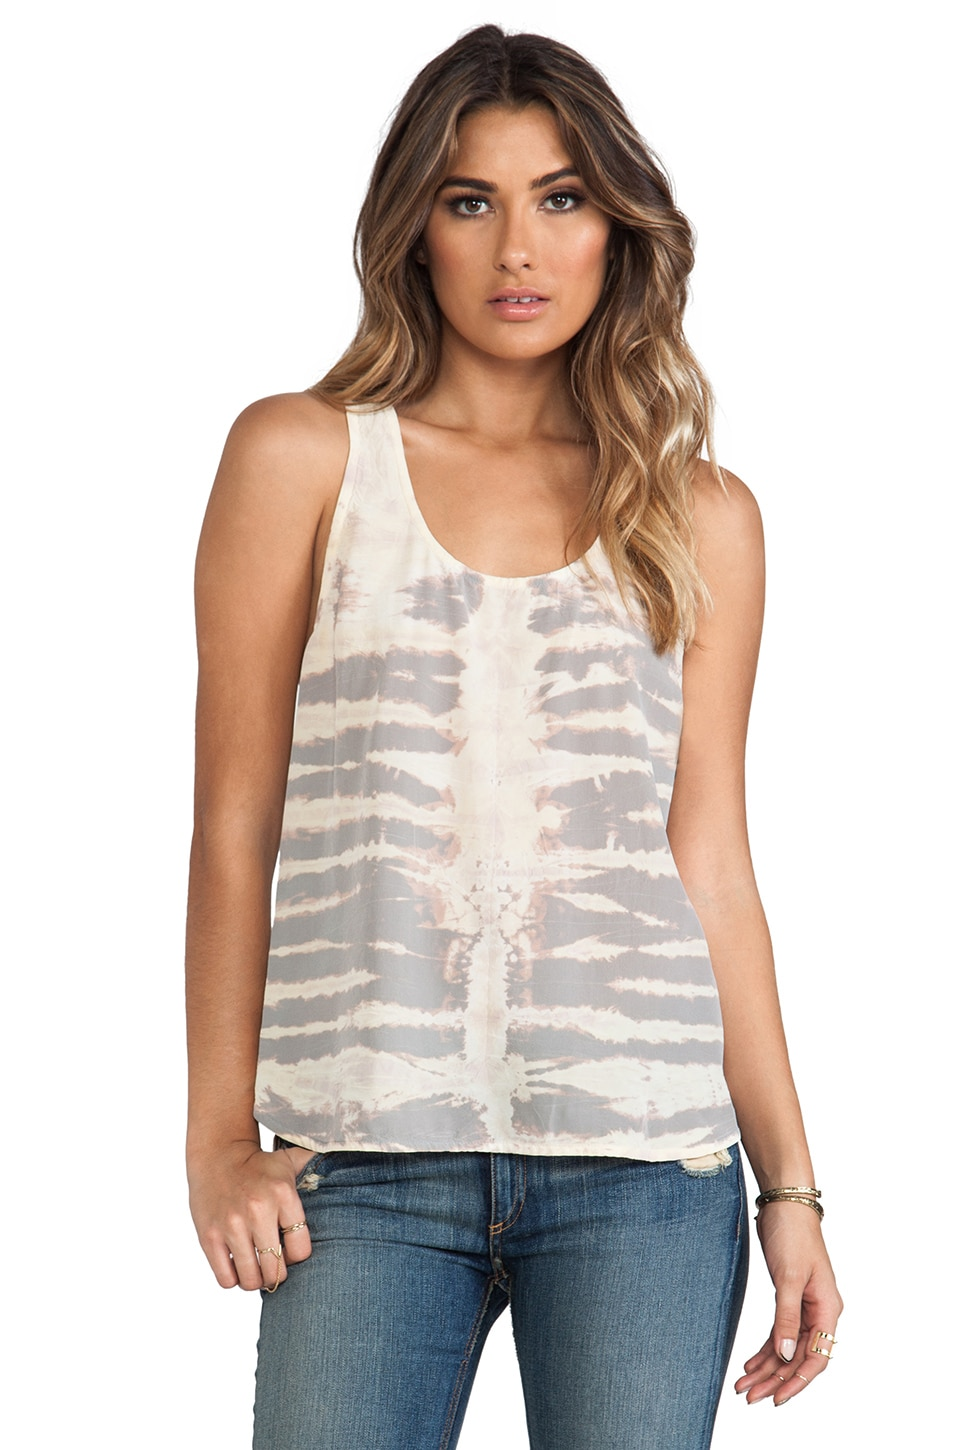 Gypsy 05 Racer Back Tank in Blush